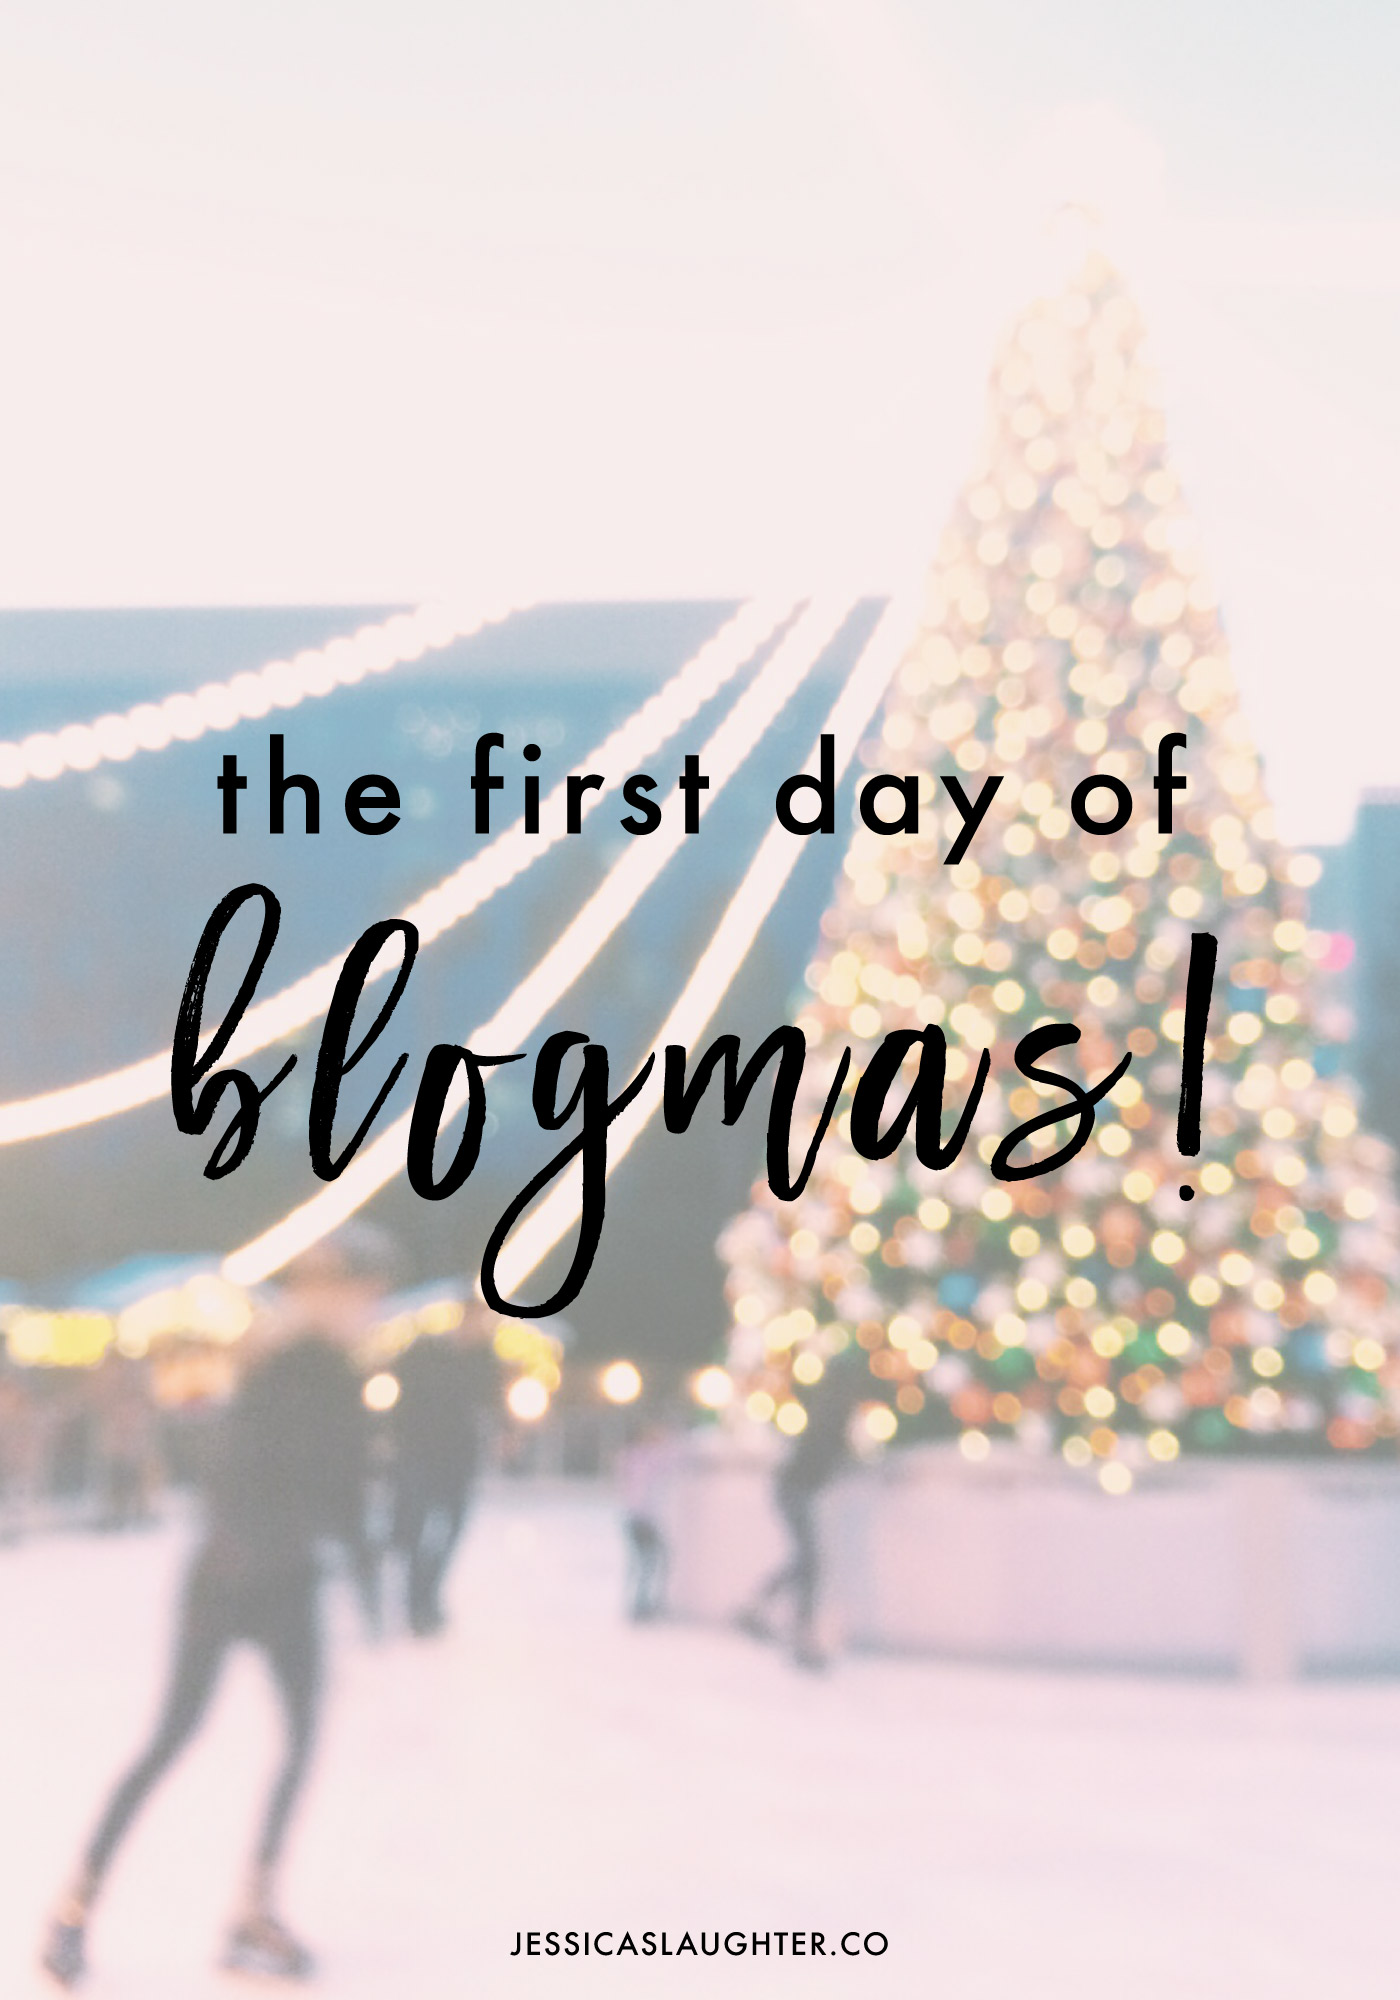 The First Day of Blogmas